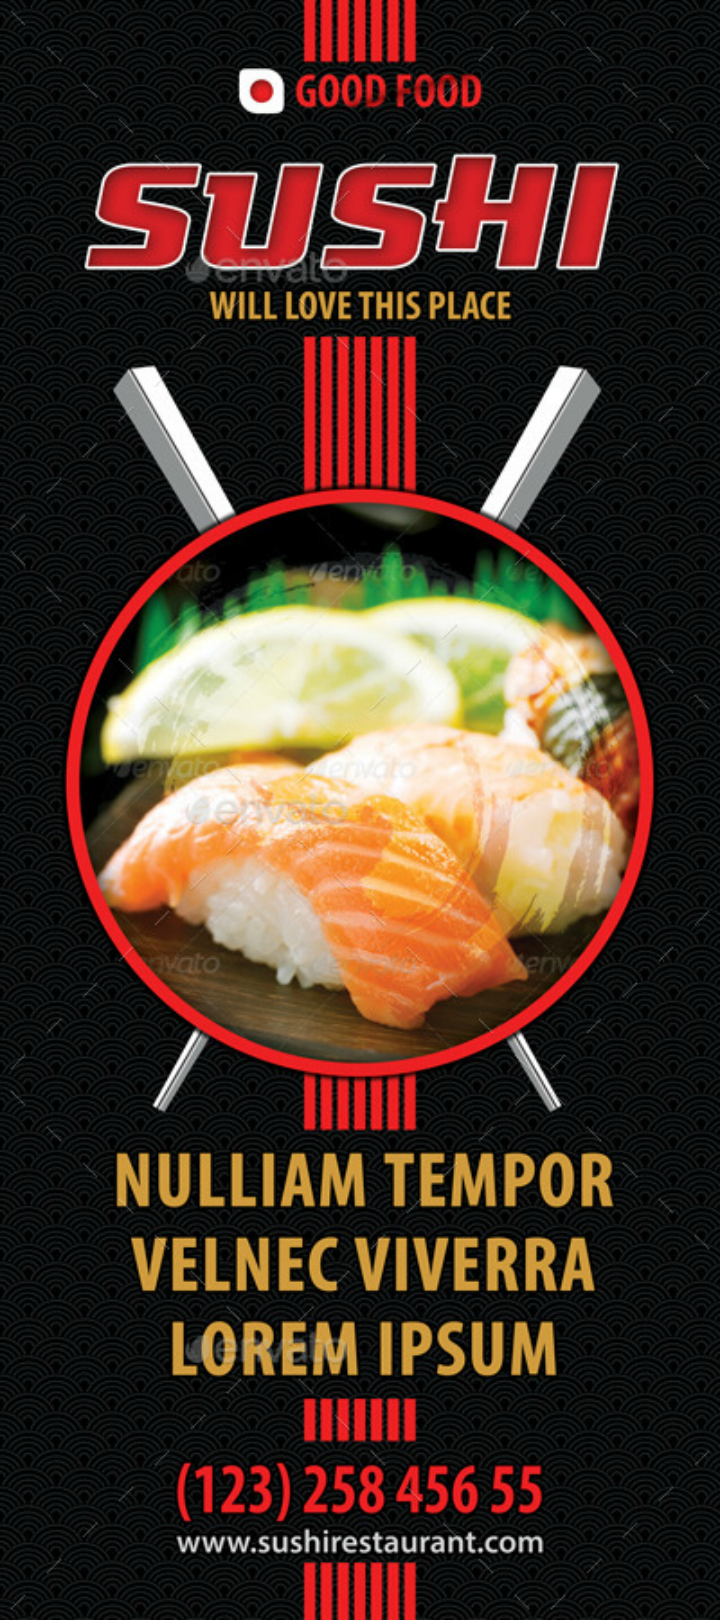 black-sushi-restaurant-rollup-banner-template